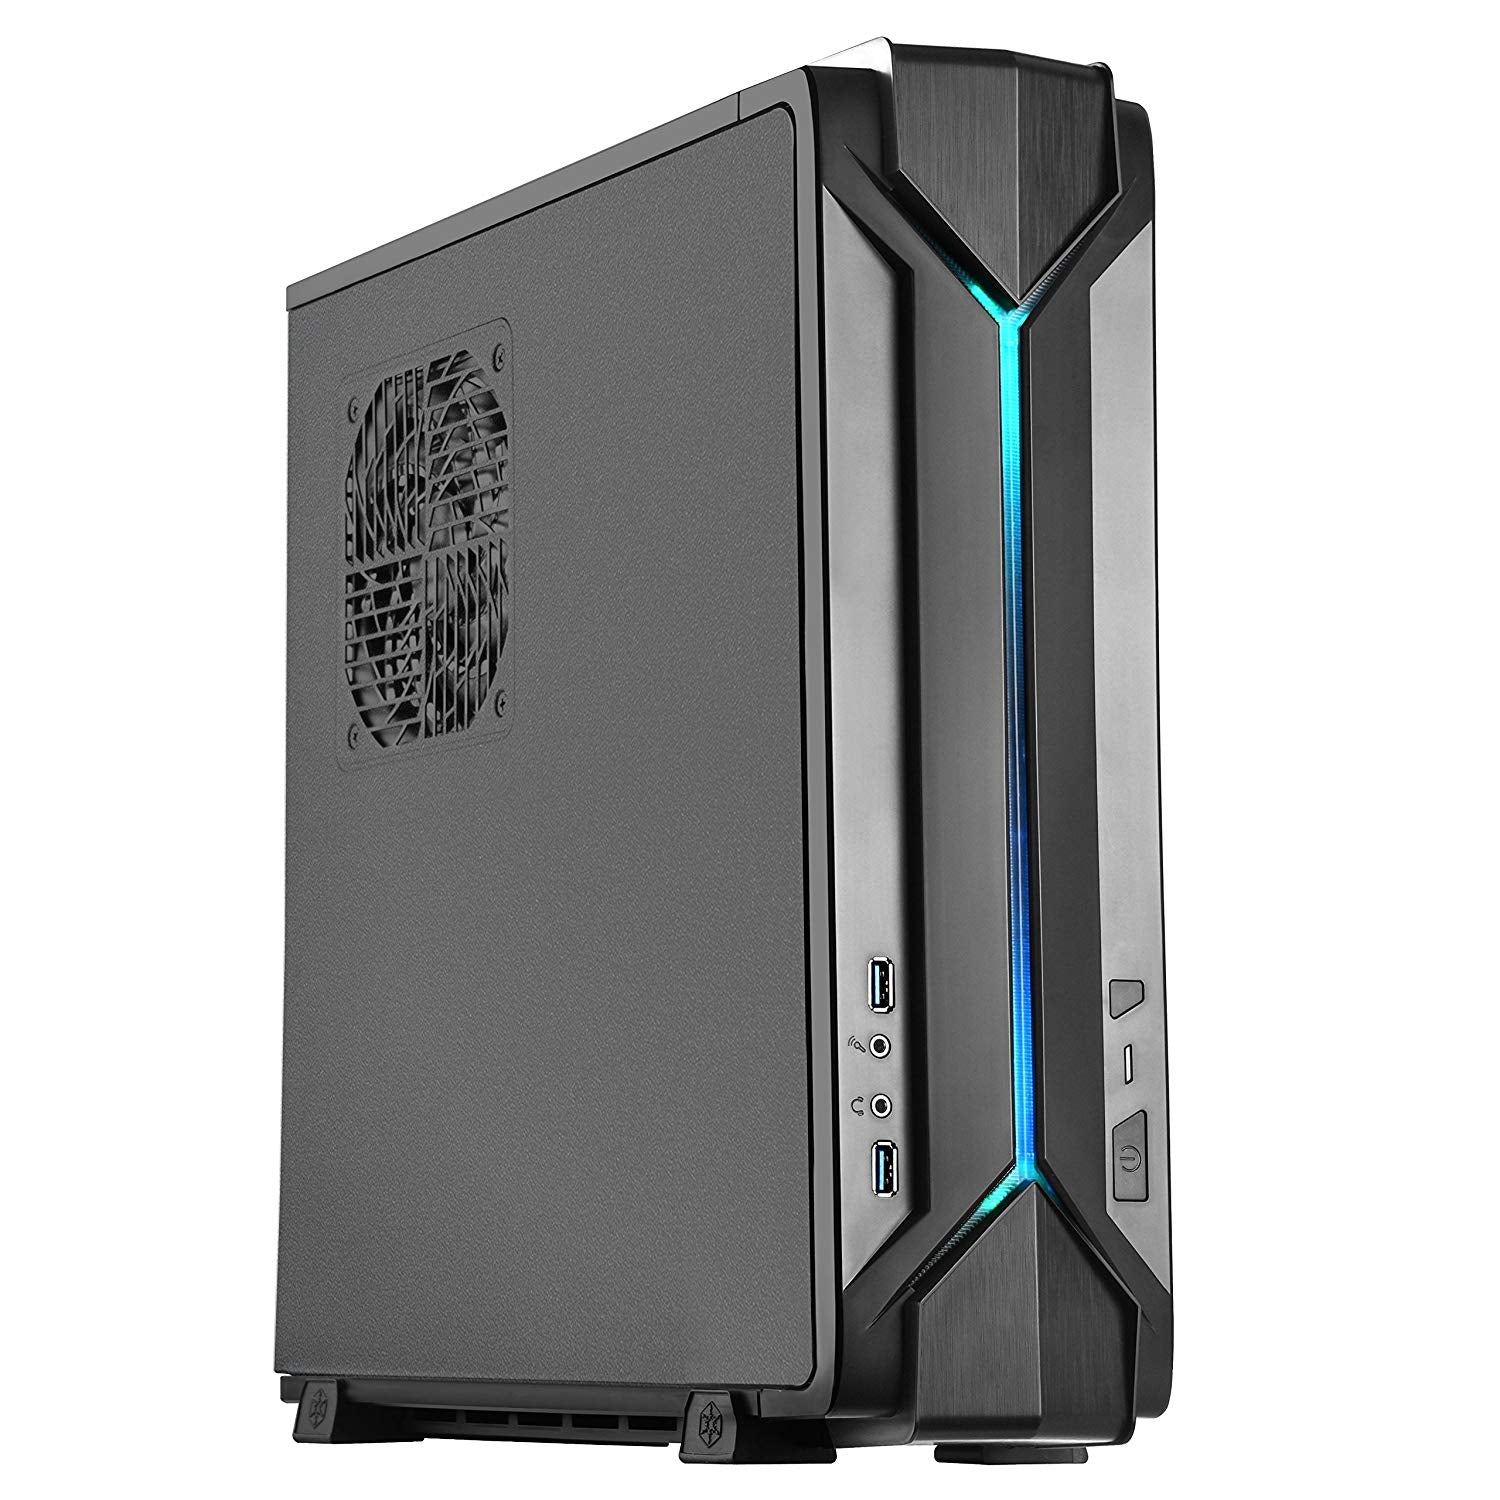 WM Hawk - AMD 2700 8 CORE | RTX 2070 Mini ITX PC